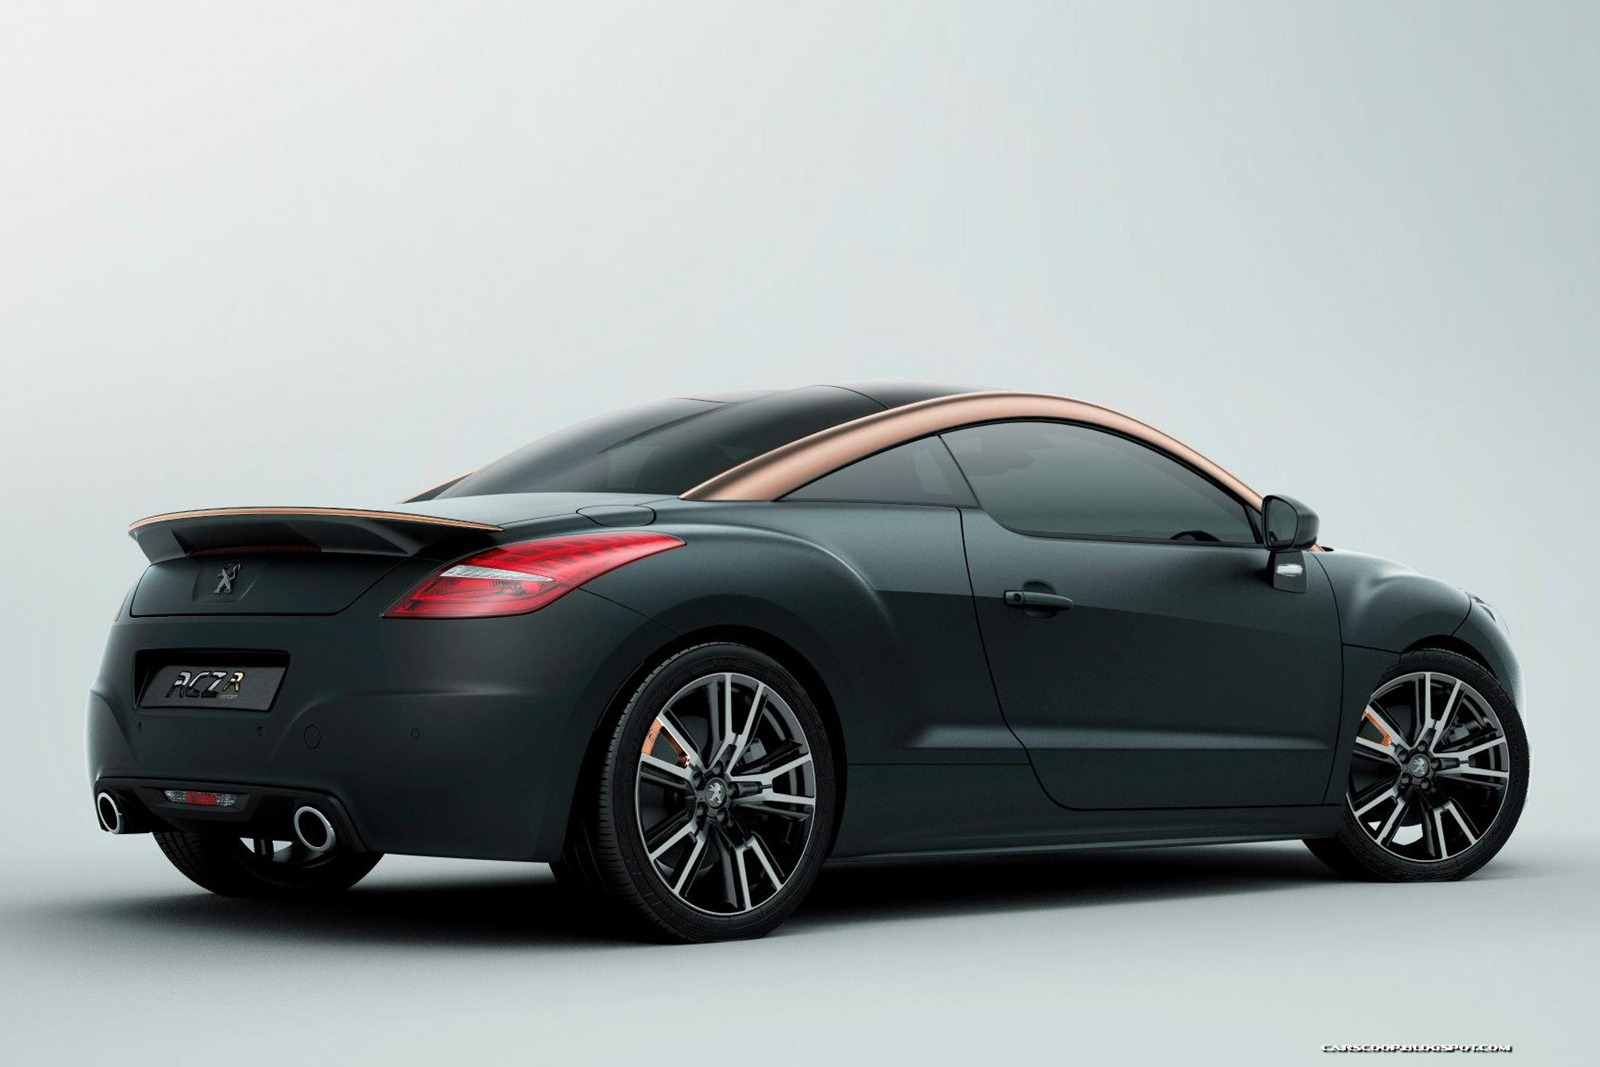 fotografia de 2013 peugeot rcz r 5 autoblog. Black Bedroom Furniture Sets. Home Design Ideas